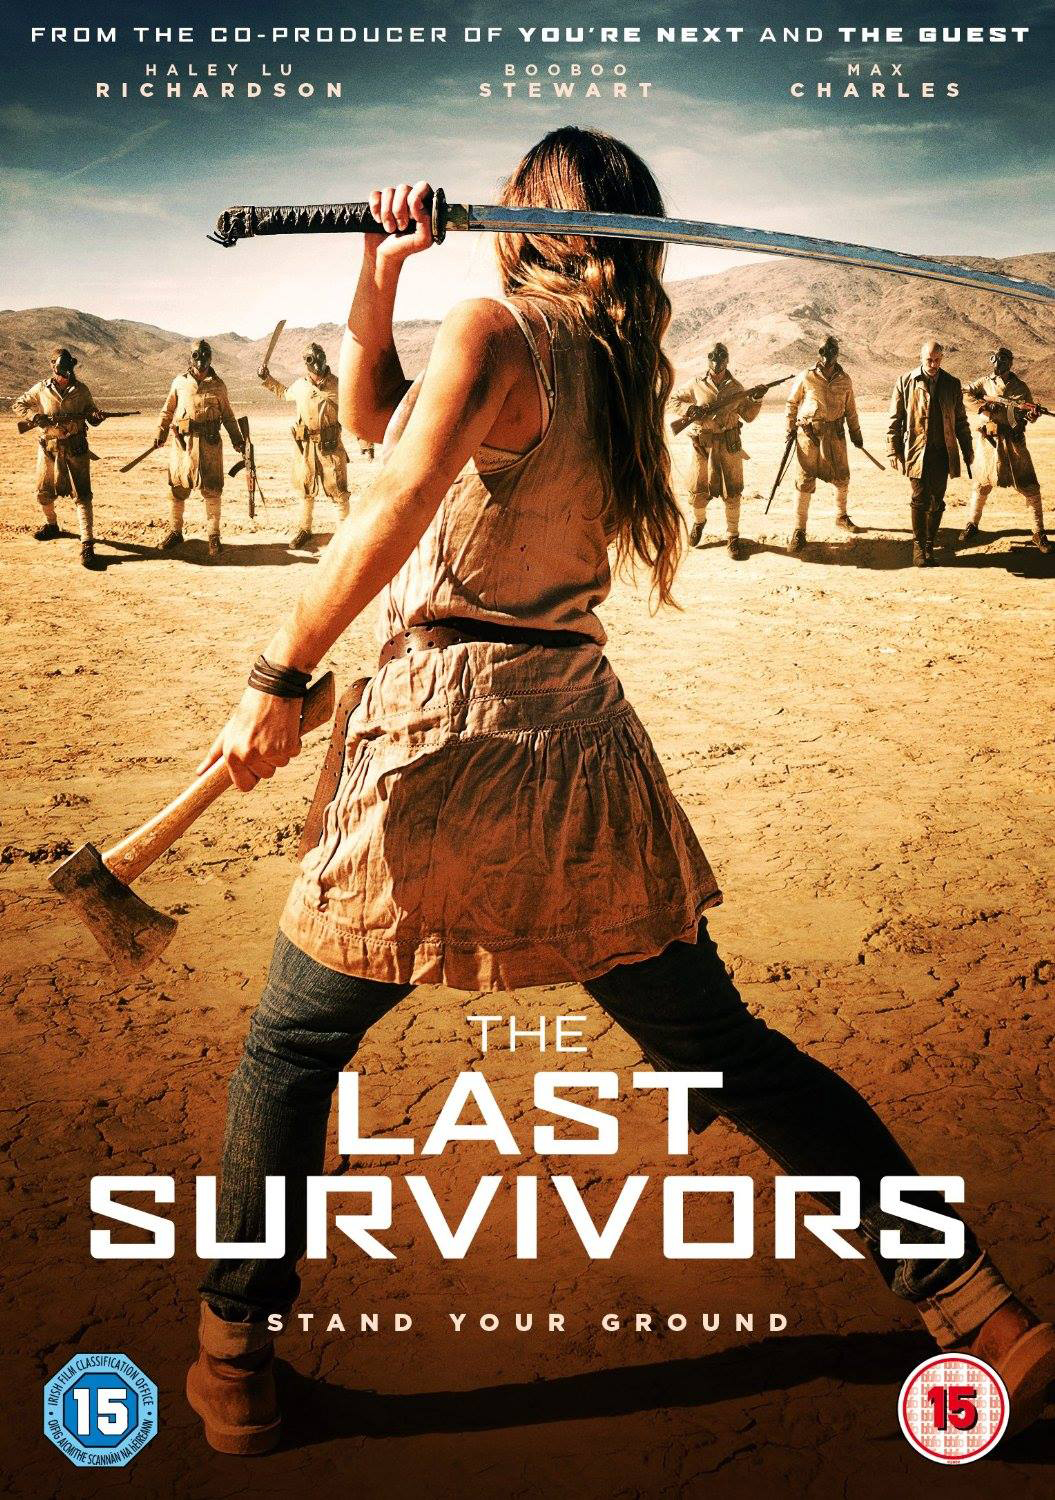 POSTER for 'The Last Survivors' (2014)